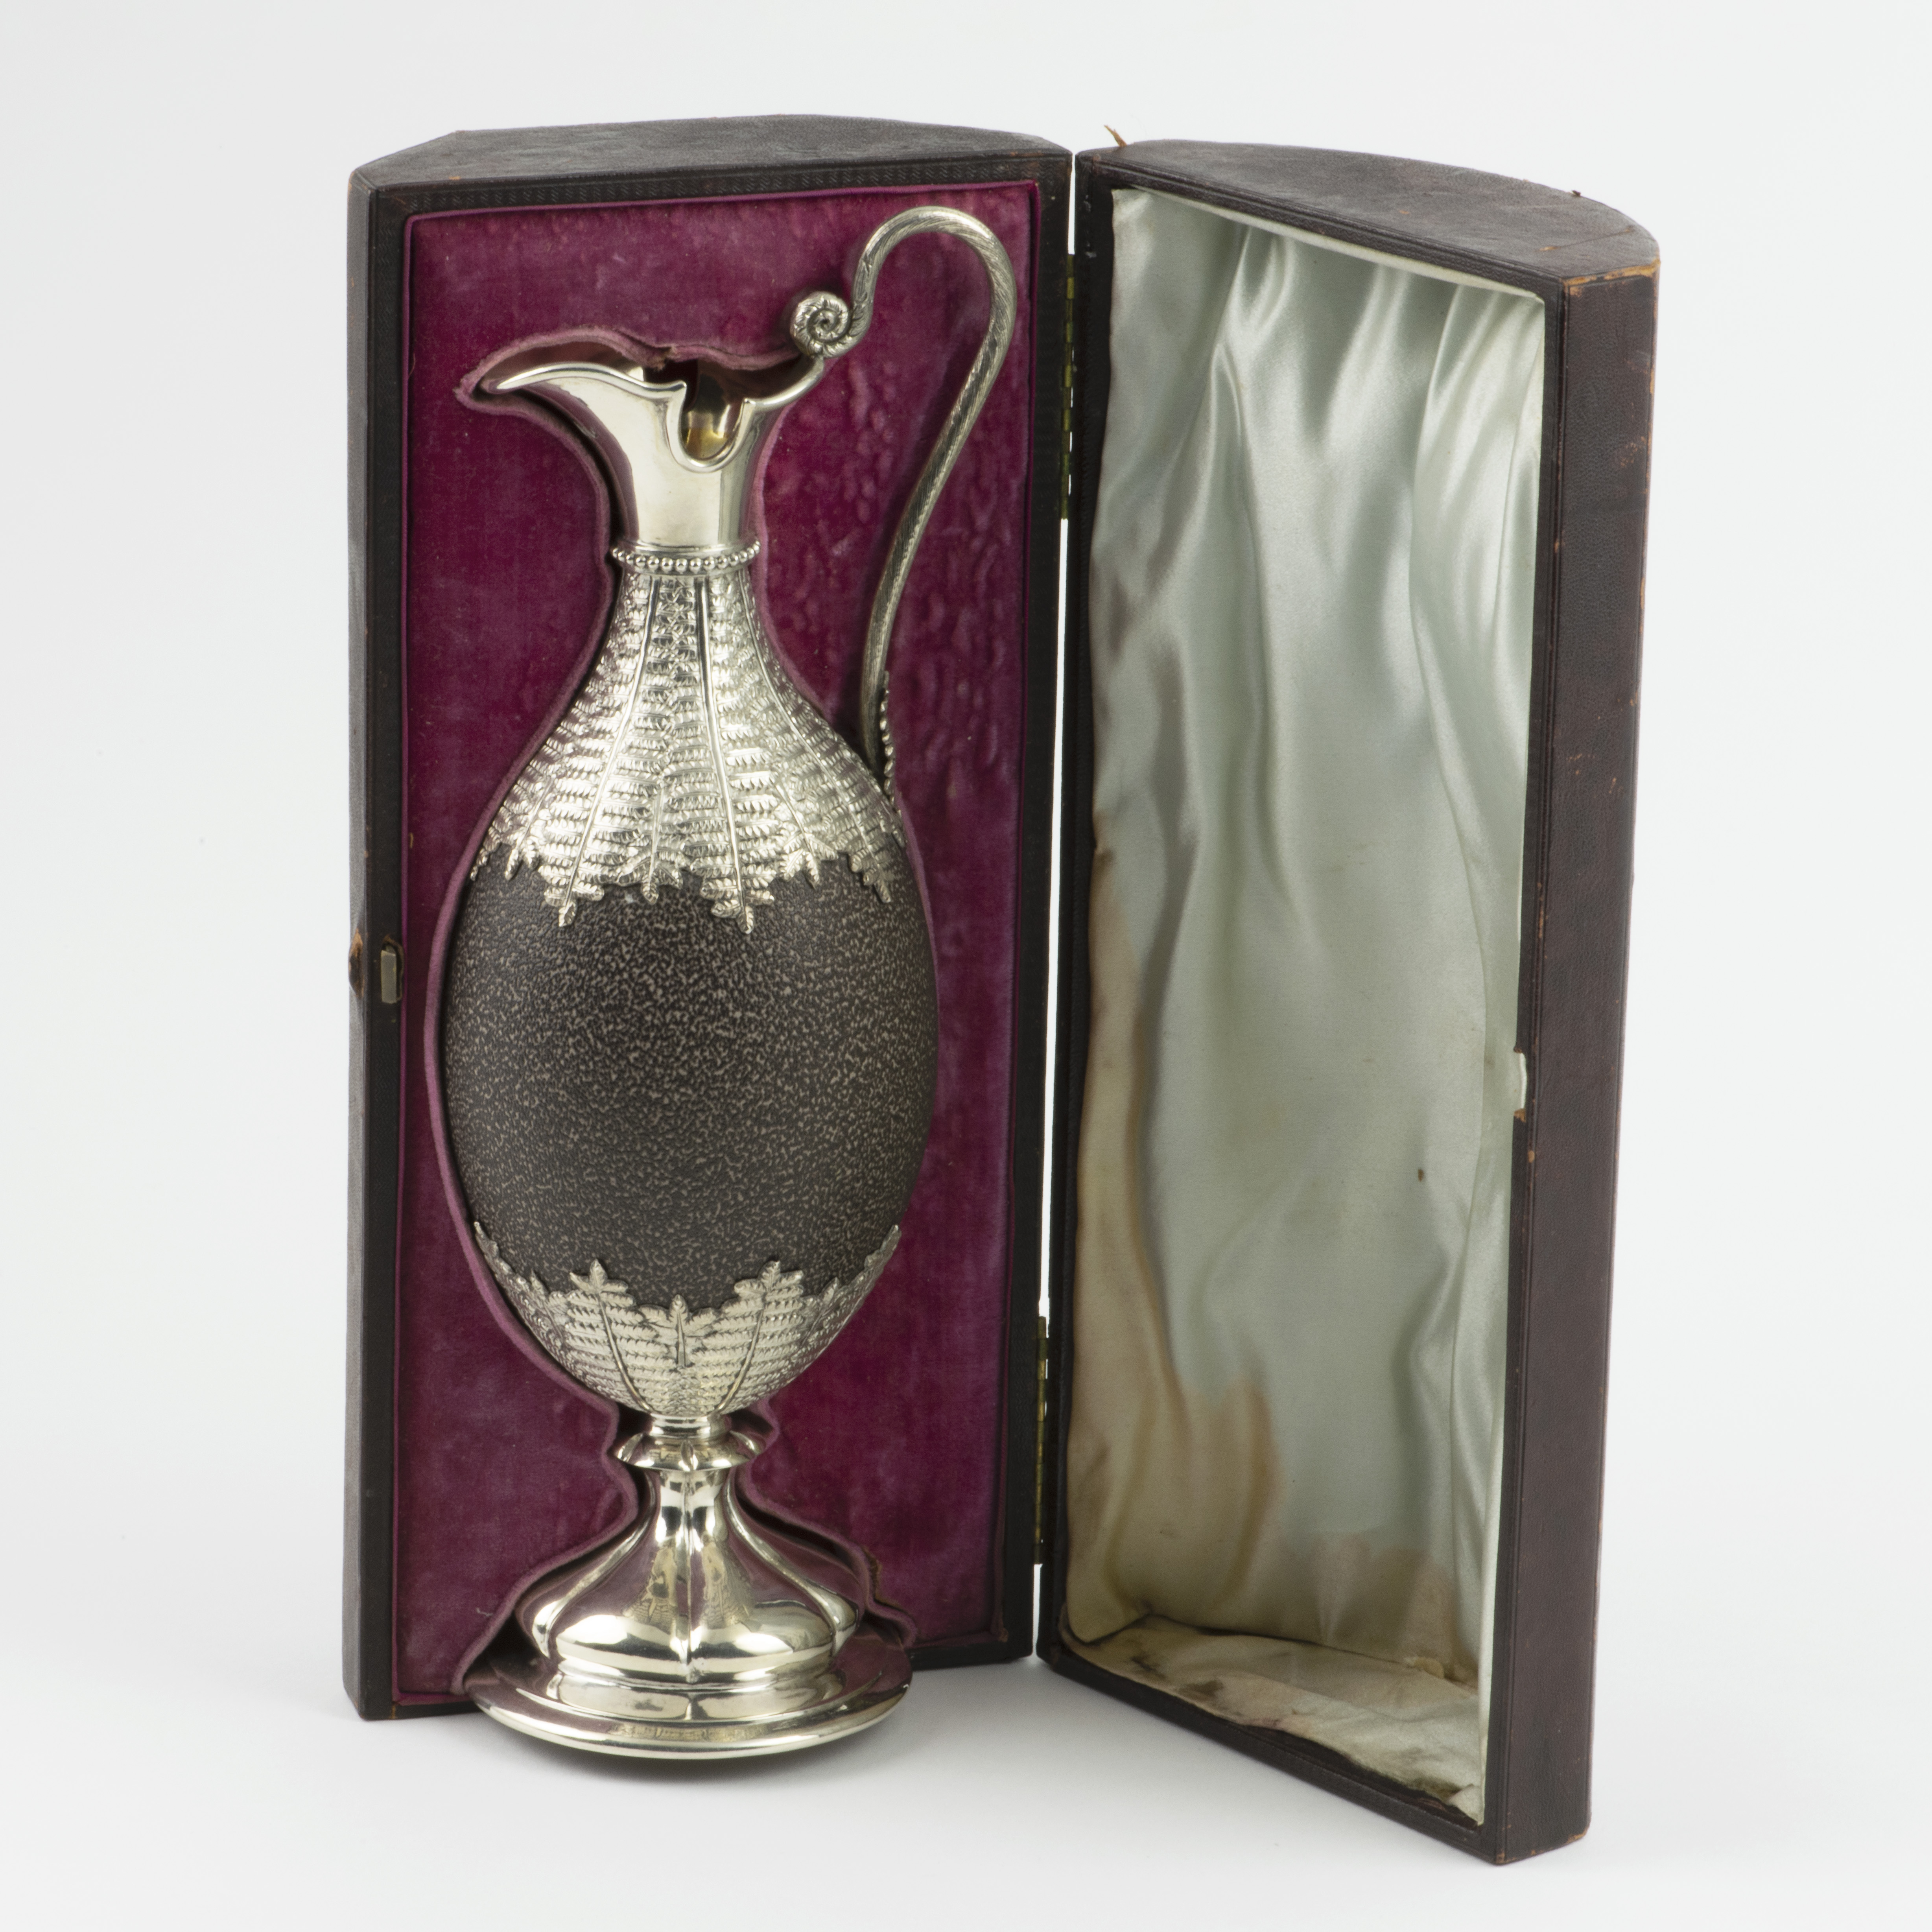 A Victorian Silver-mounted Emu Egg Jug By Kilpatrick And Company.